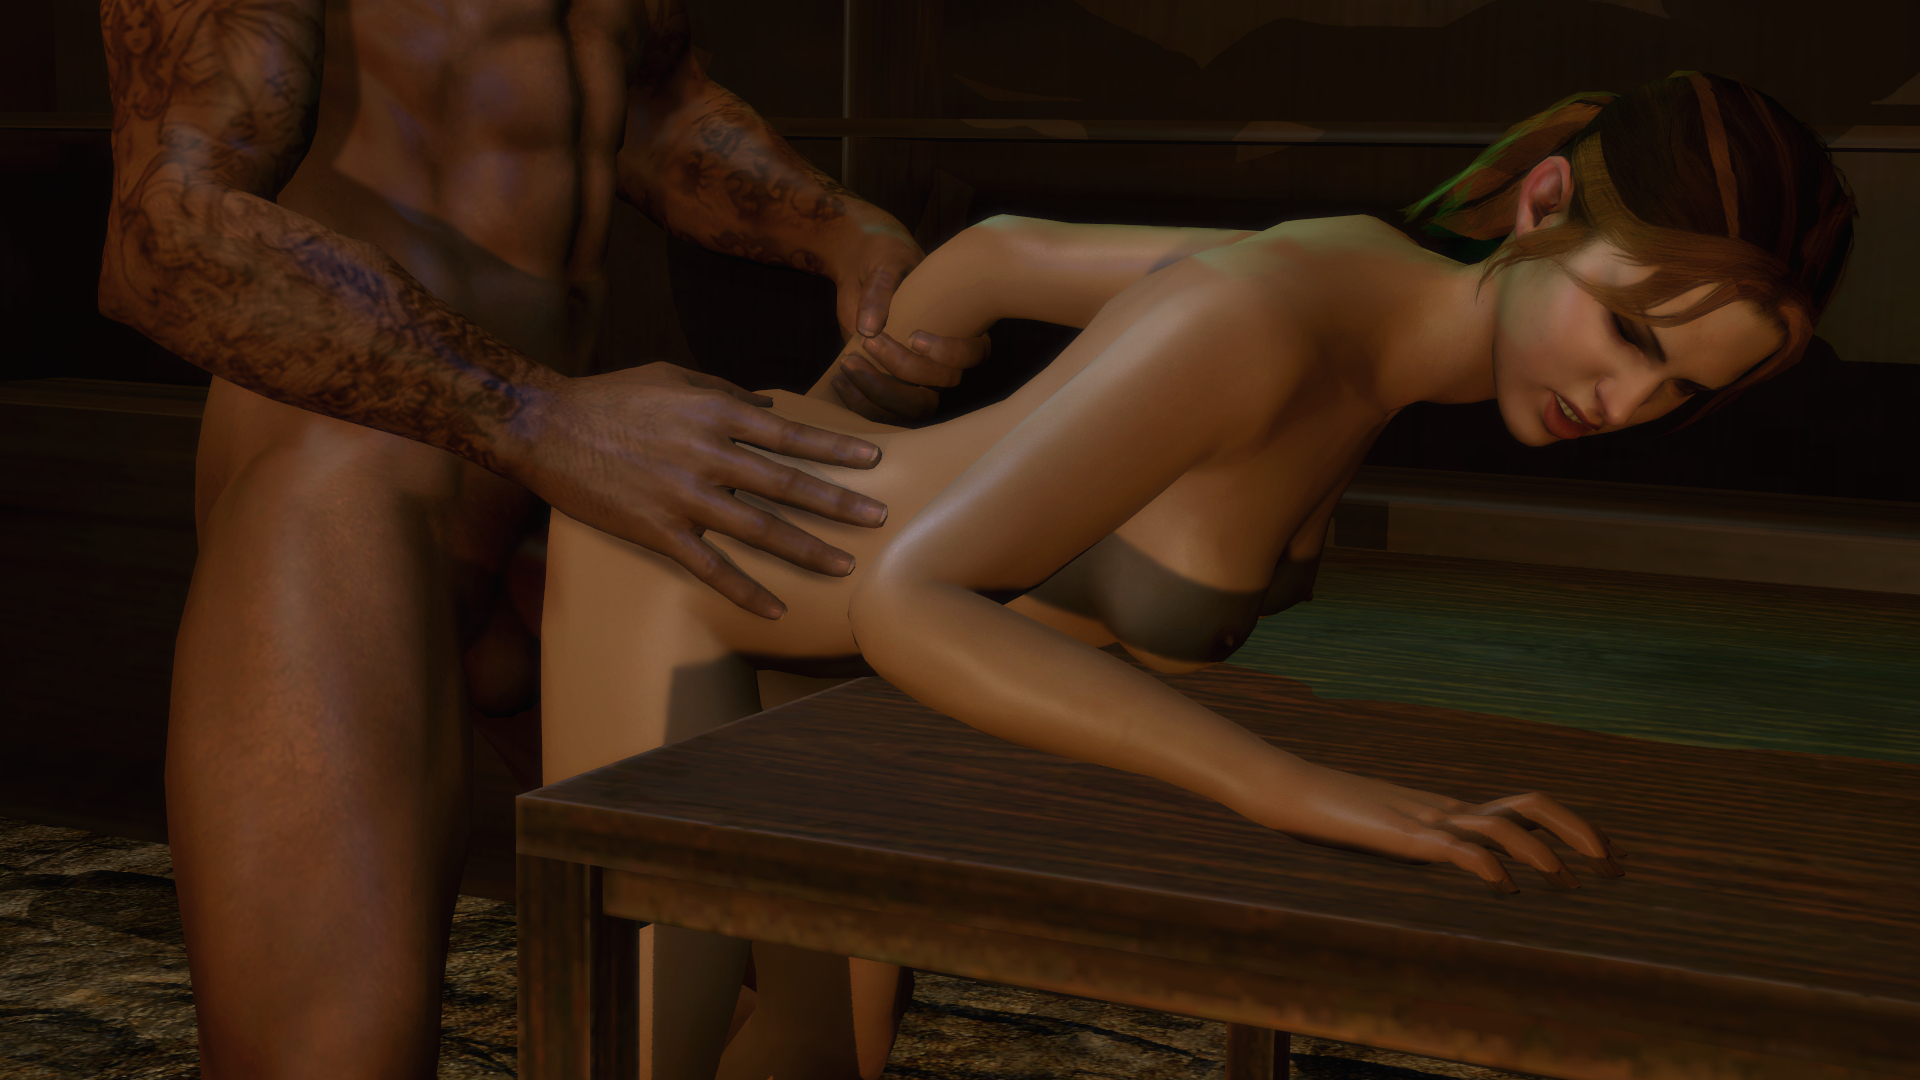 Zoey from left4dead naked sex adult female